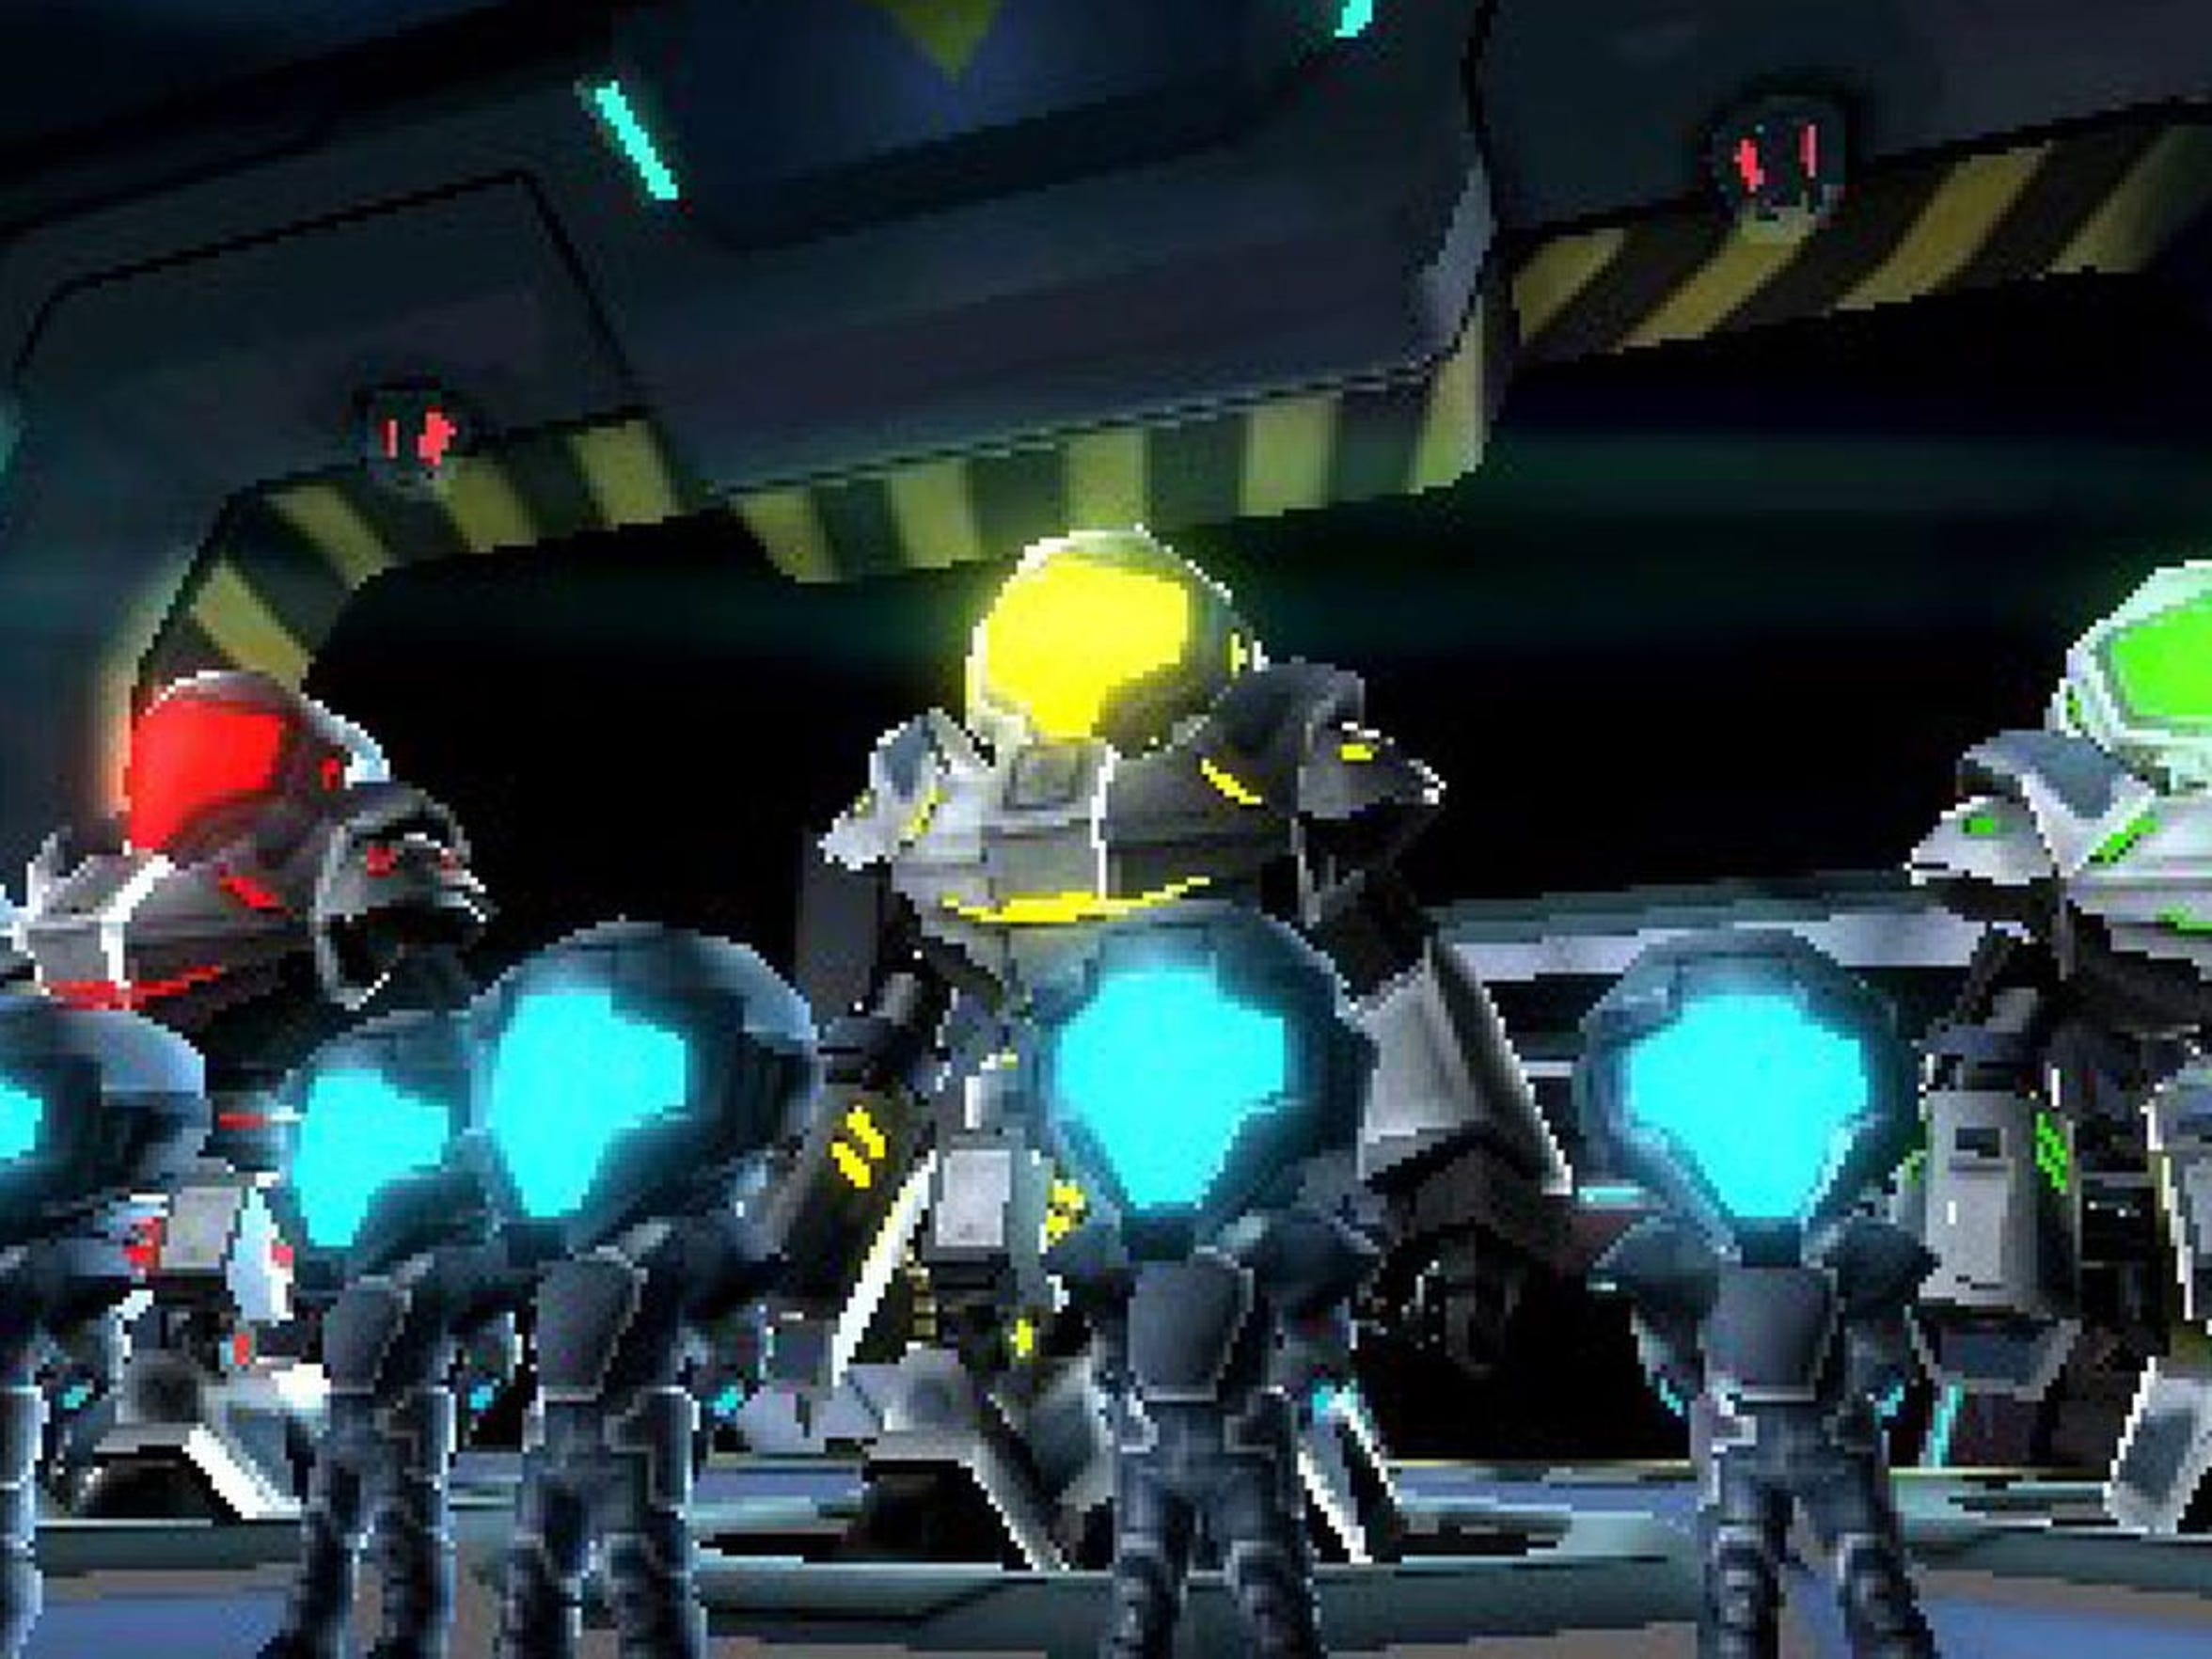 Suit up with large mechs and fight space pirates in